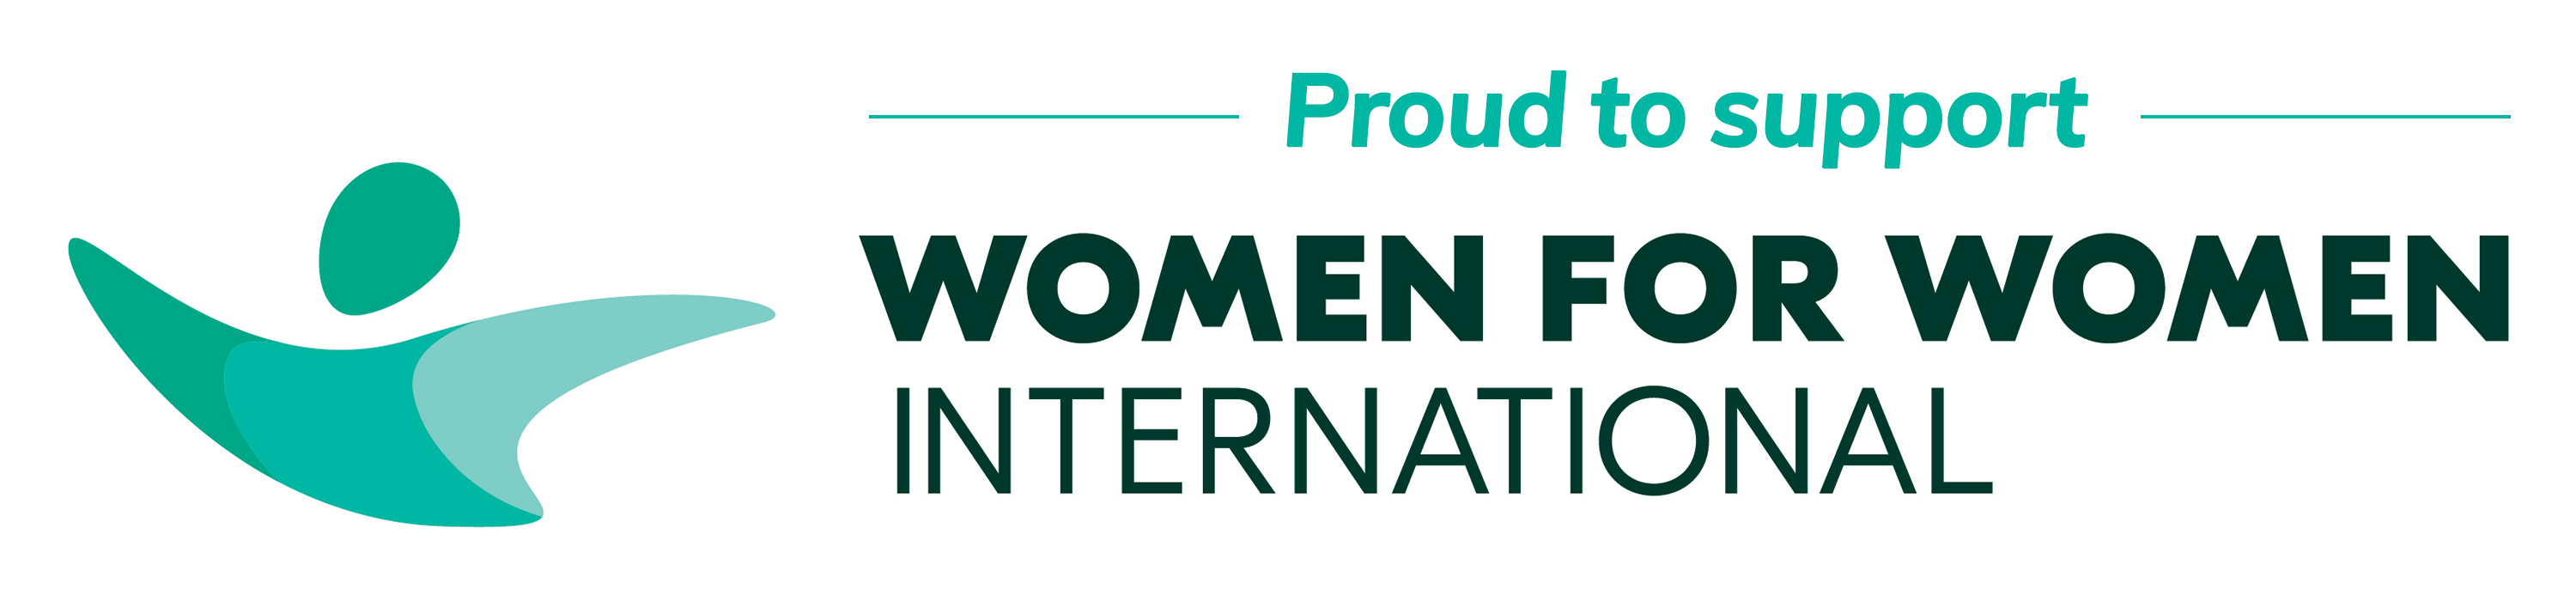 proud to support Women for Women banner